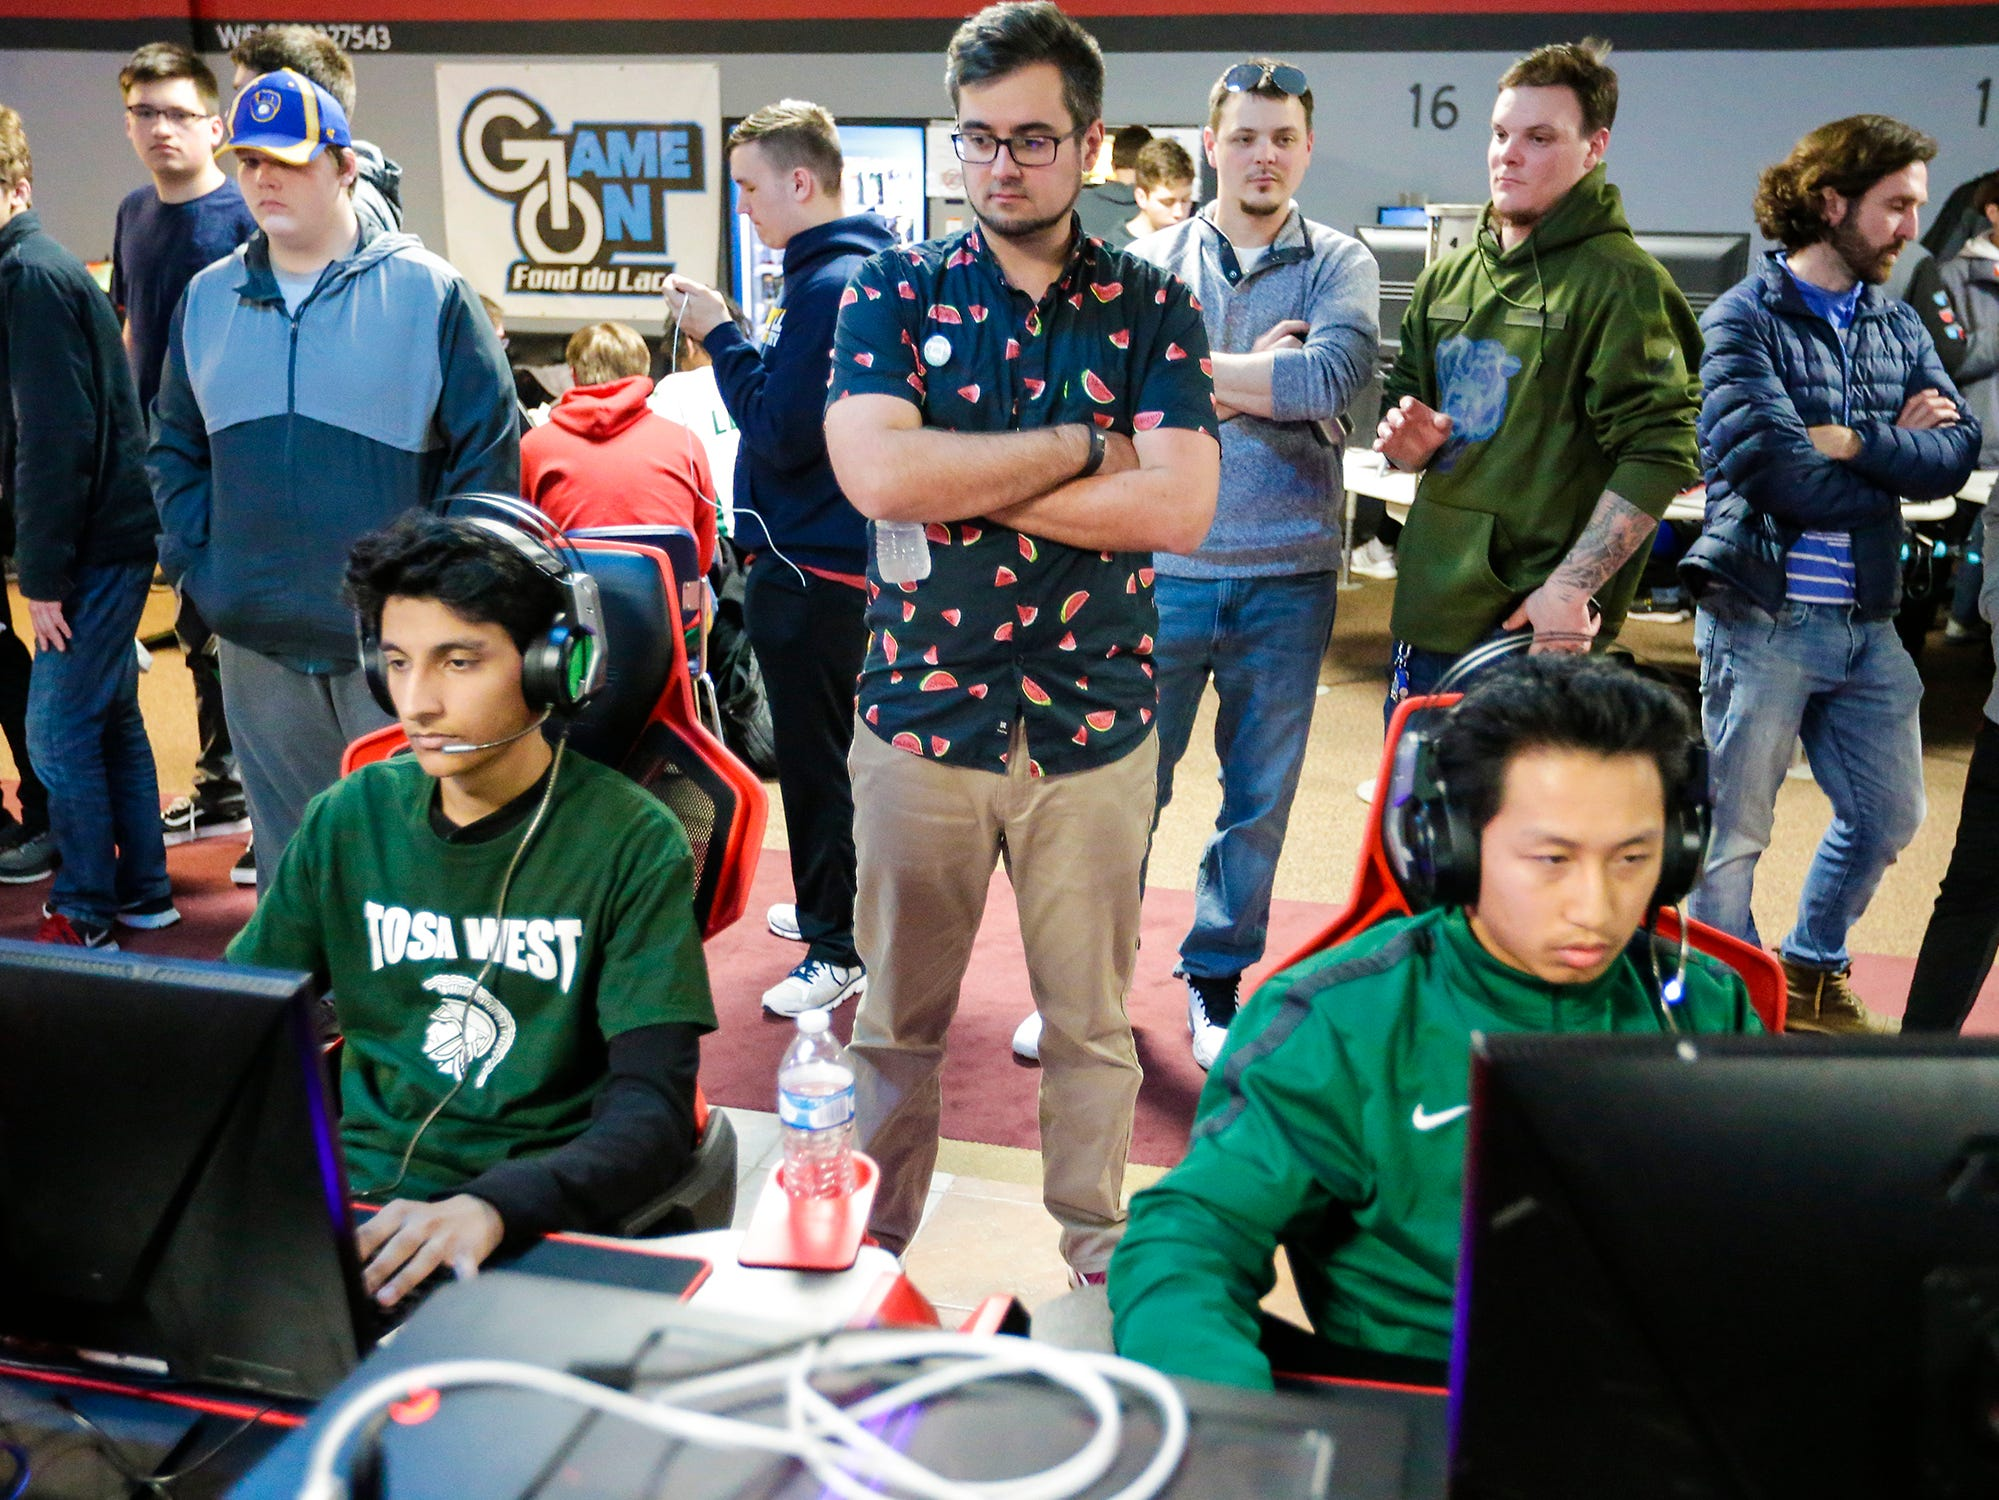 Mike Dahle, President of the Wisconsin High School Esports Association watches Abdul Bhatti and Destyn Lee play a video game at the Wisconsin High School Esports Association's State Championship Saturday, April 13, 2019 at Game On in Fond du Lac Wisconsin. Teams from all over Wisconsin compete in 4 games during the event. Overwatch, Rocket League, League of Legends, and Smash Ultimate. Doug Raflik/USA TODAY NETWORK-Wisconsin